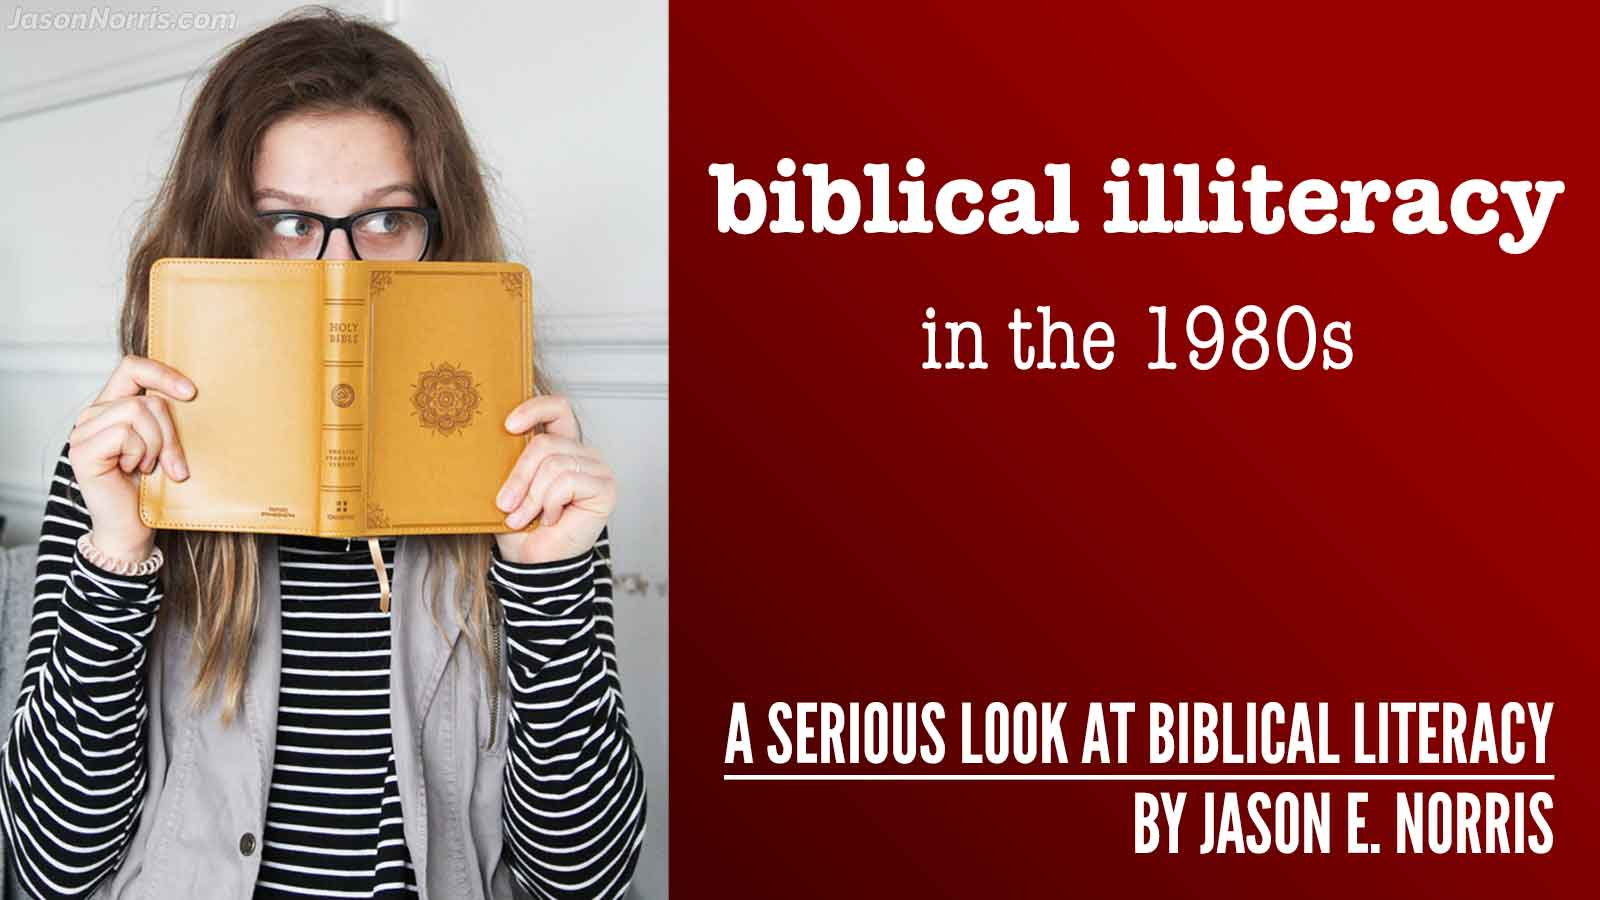 Biblical illiteracy in the 1980s by Jason E. Norris